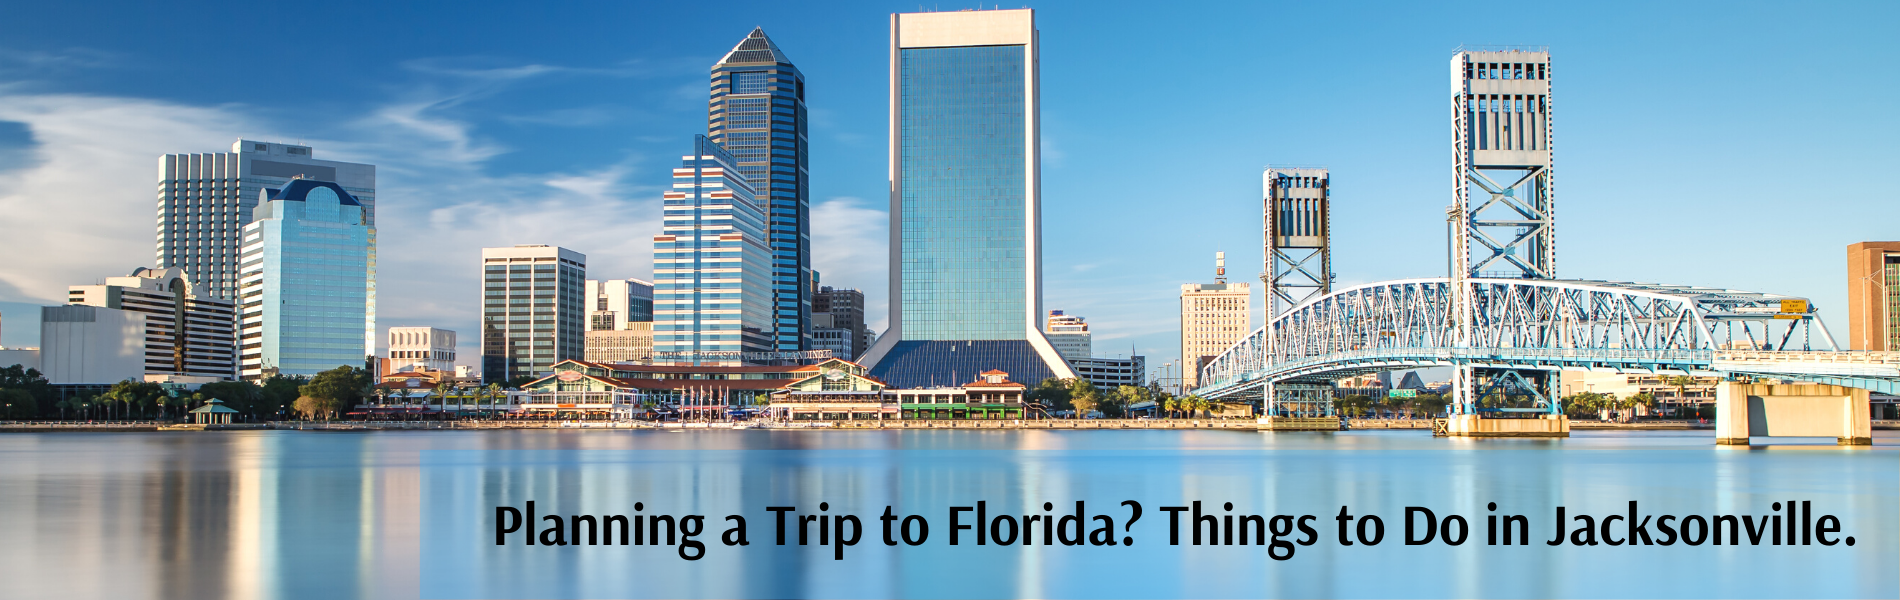 Planning a Trip to Florida_ Things to Do in Jacksonville.